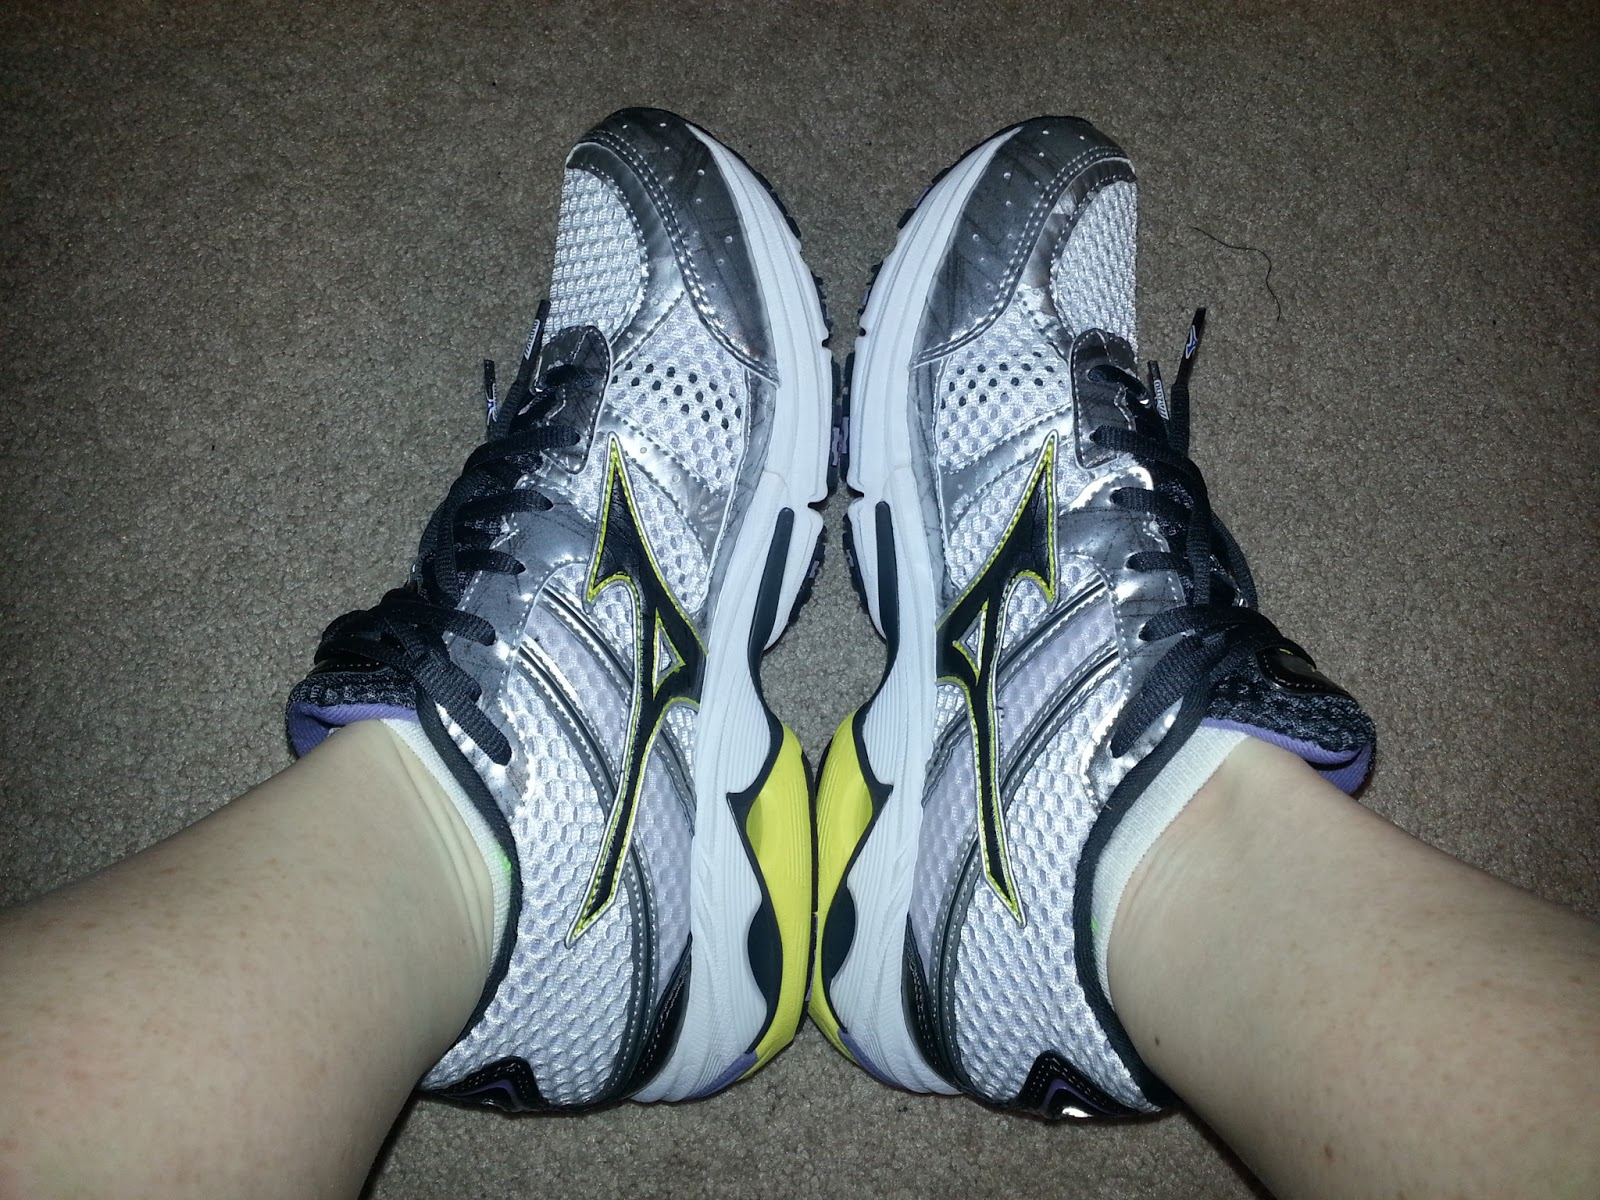 Lets Talk Shoes Socks And Strawberry Jam Lindsey Szakacs Running I Need A Pair Of Just For Road Runs Had The Asics But If You Do Not Remember We Broke Up After Few Very Bad